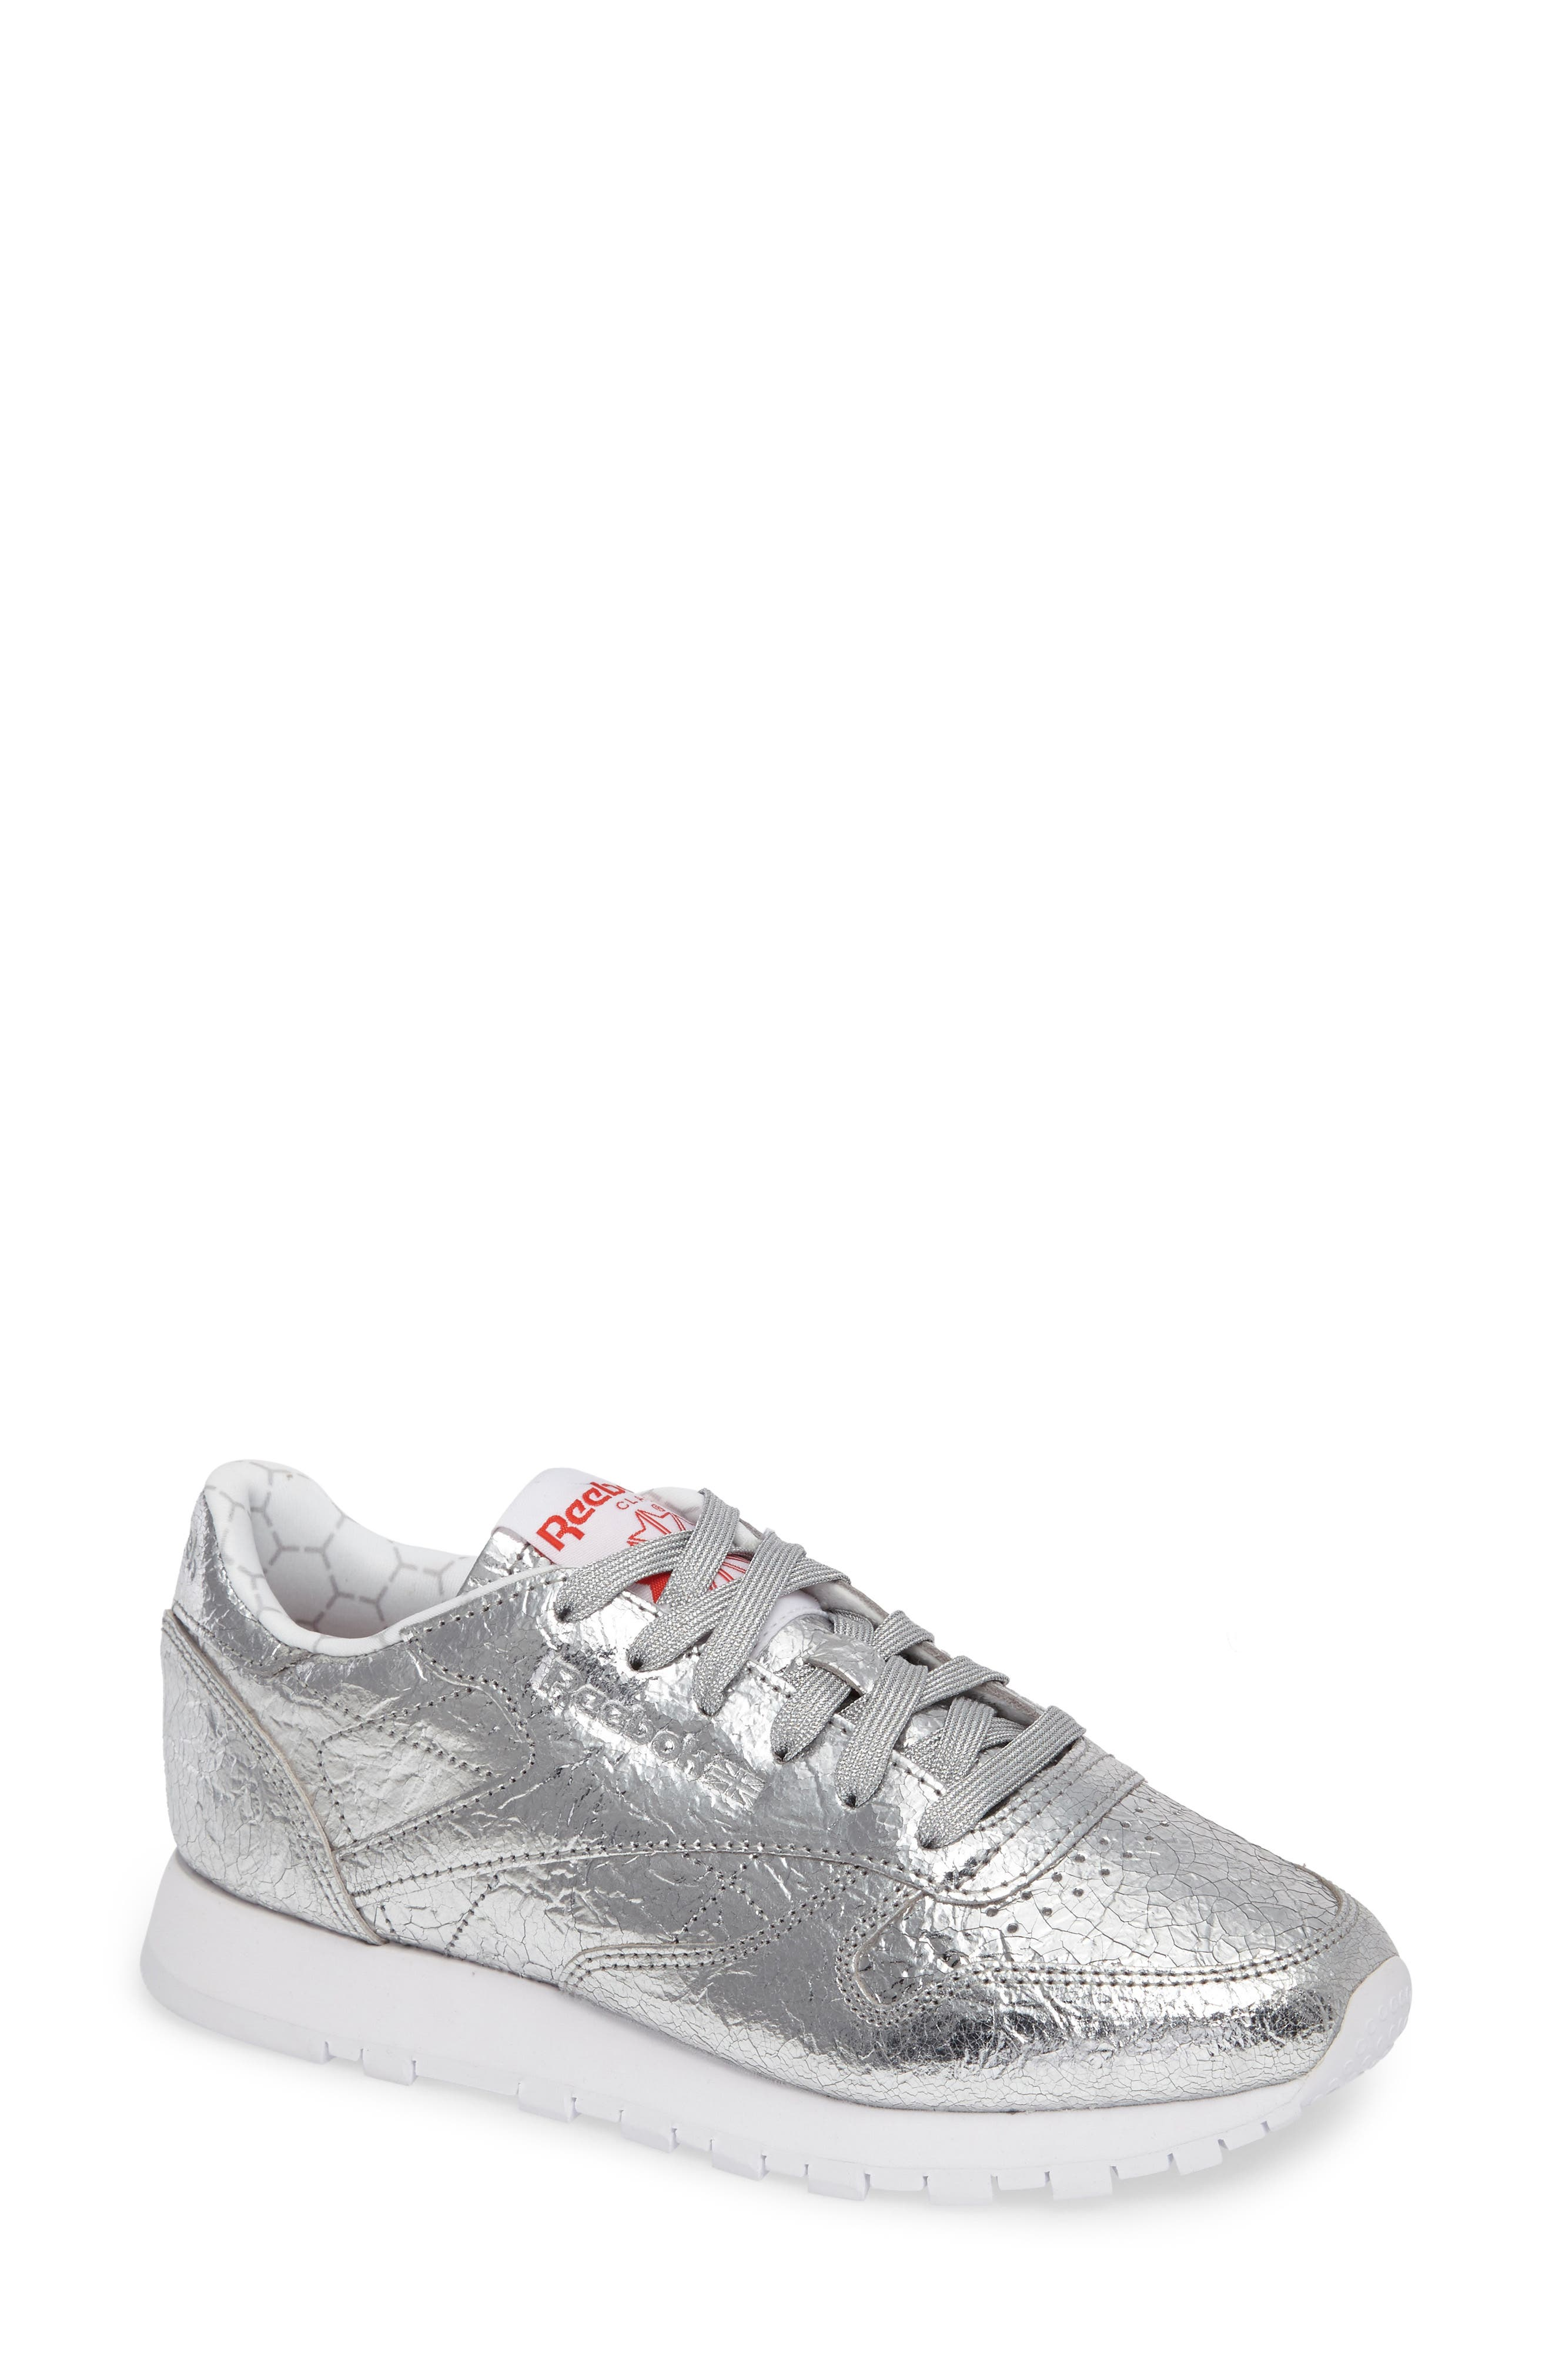 Classic Leather HD Foil Sneaker,                             Main thumbnail 1, color,                             Silver/ Grey/ Red/ White